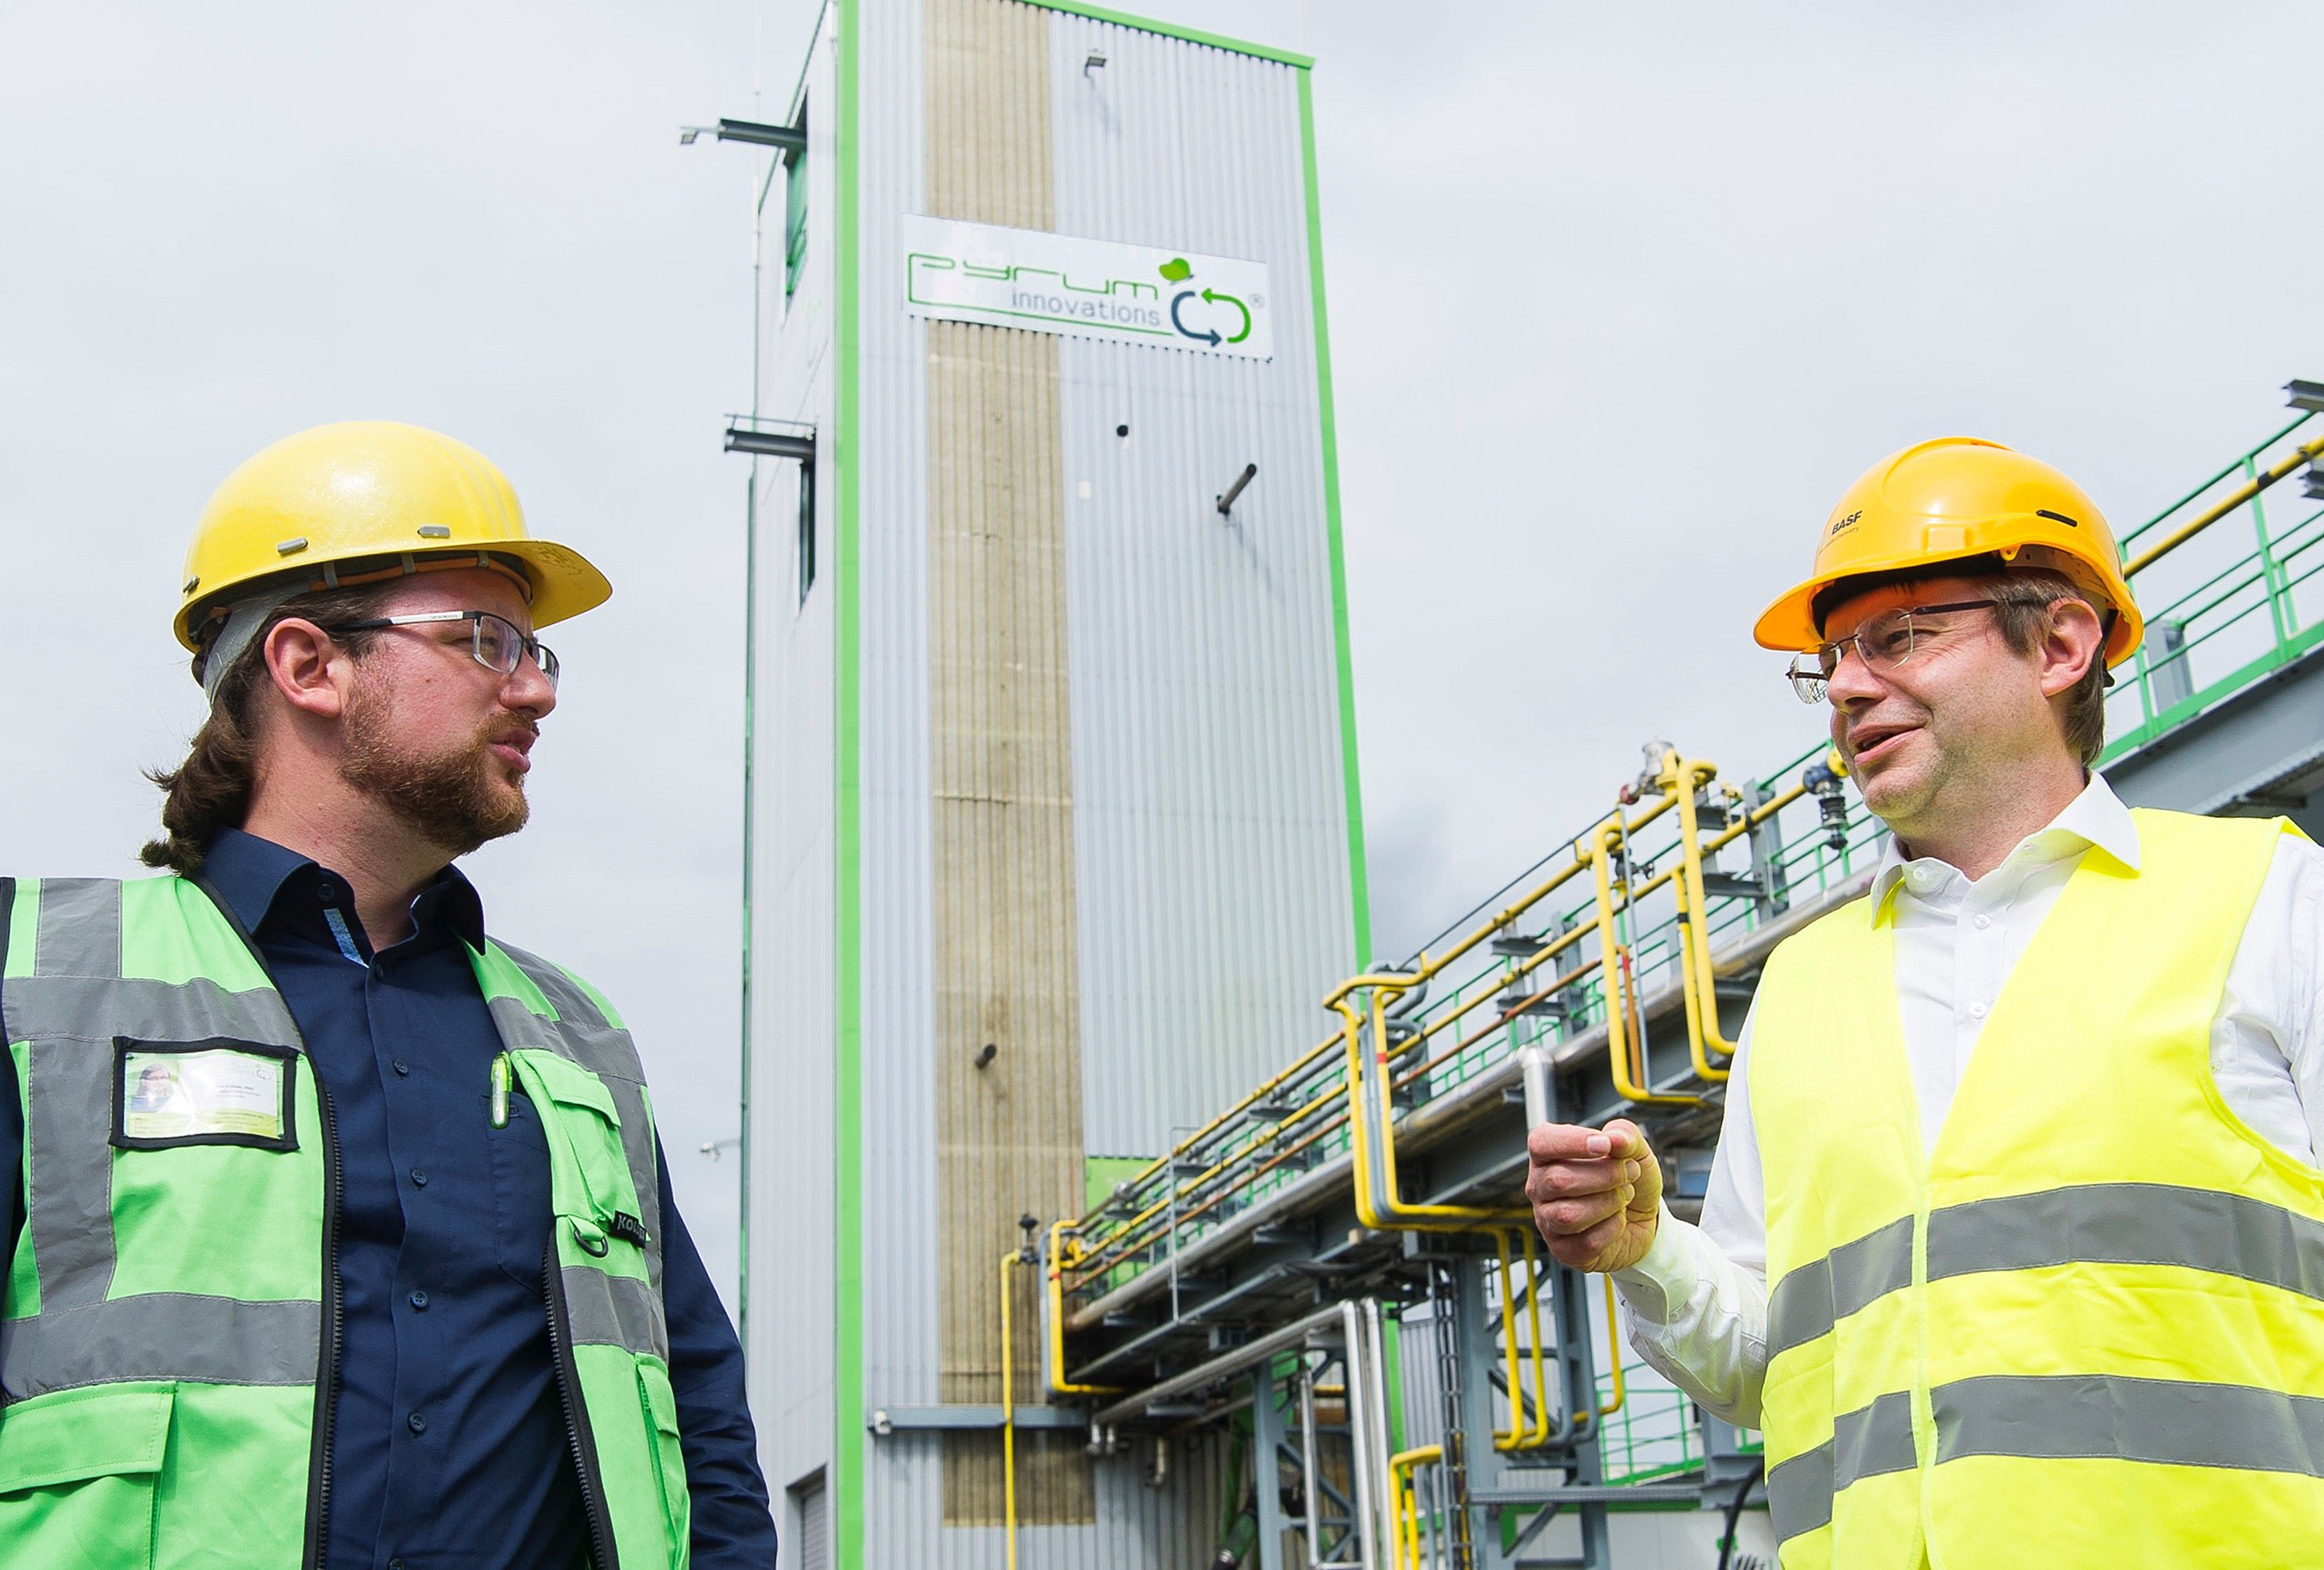 Pascal Klein (left), Founder and CEO of Pyrum Innovations AG and Dr. Christian Lach (right), Project Lead ChemCycling at BASF, in front of Pyrum's tyre pyrolysis plant in Dillingen/Saar, Germany. (Source: BASF)